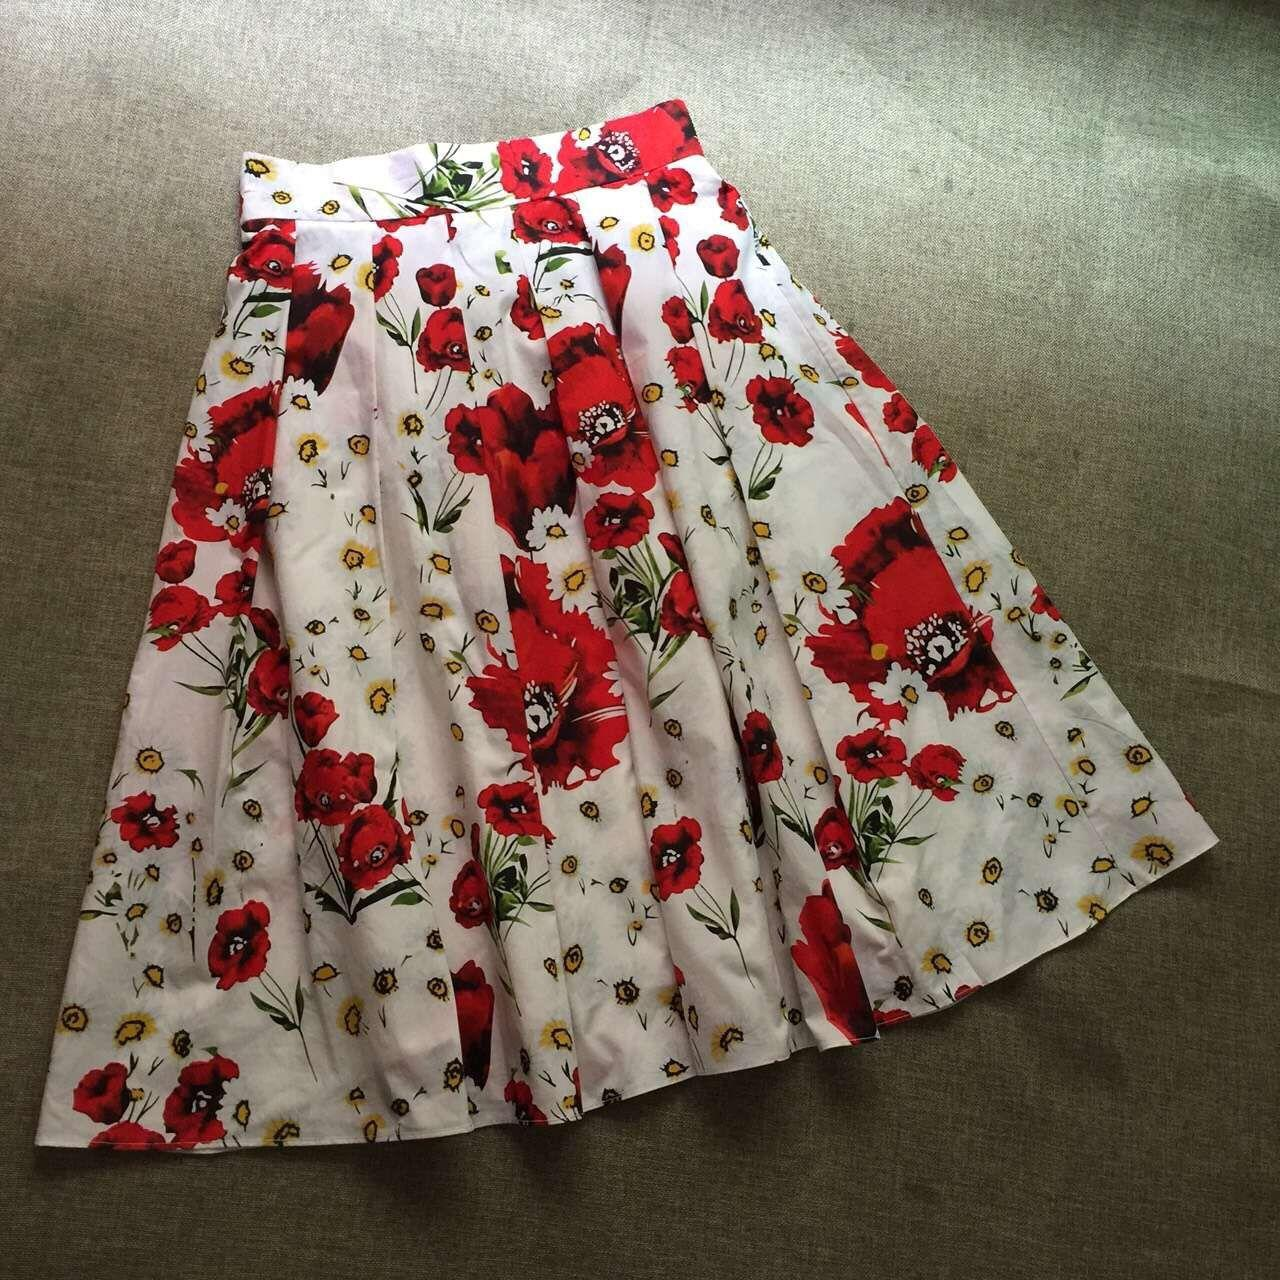 Customized Women's Casual Pleated A Line Skirts Pattern Fashion Ladies Retro Red Flora Print Runway Skirt Plus Size